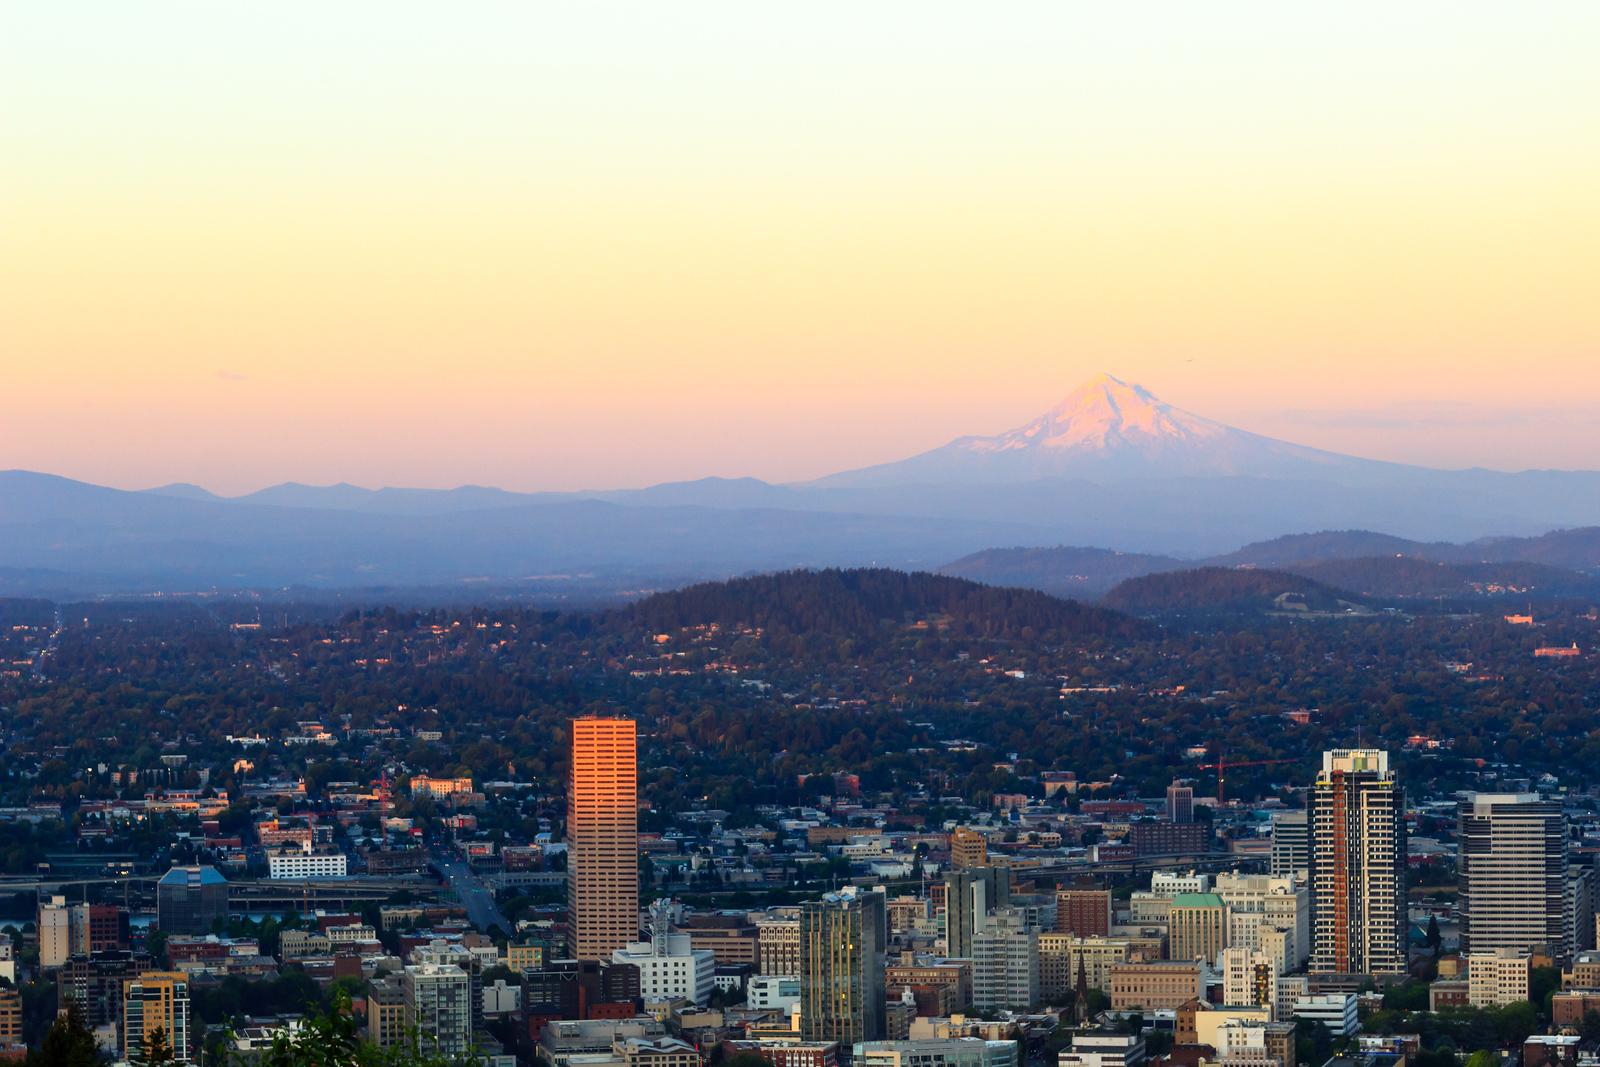 Sunset View of Portland Oregon from Pittock Mansion